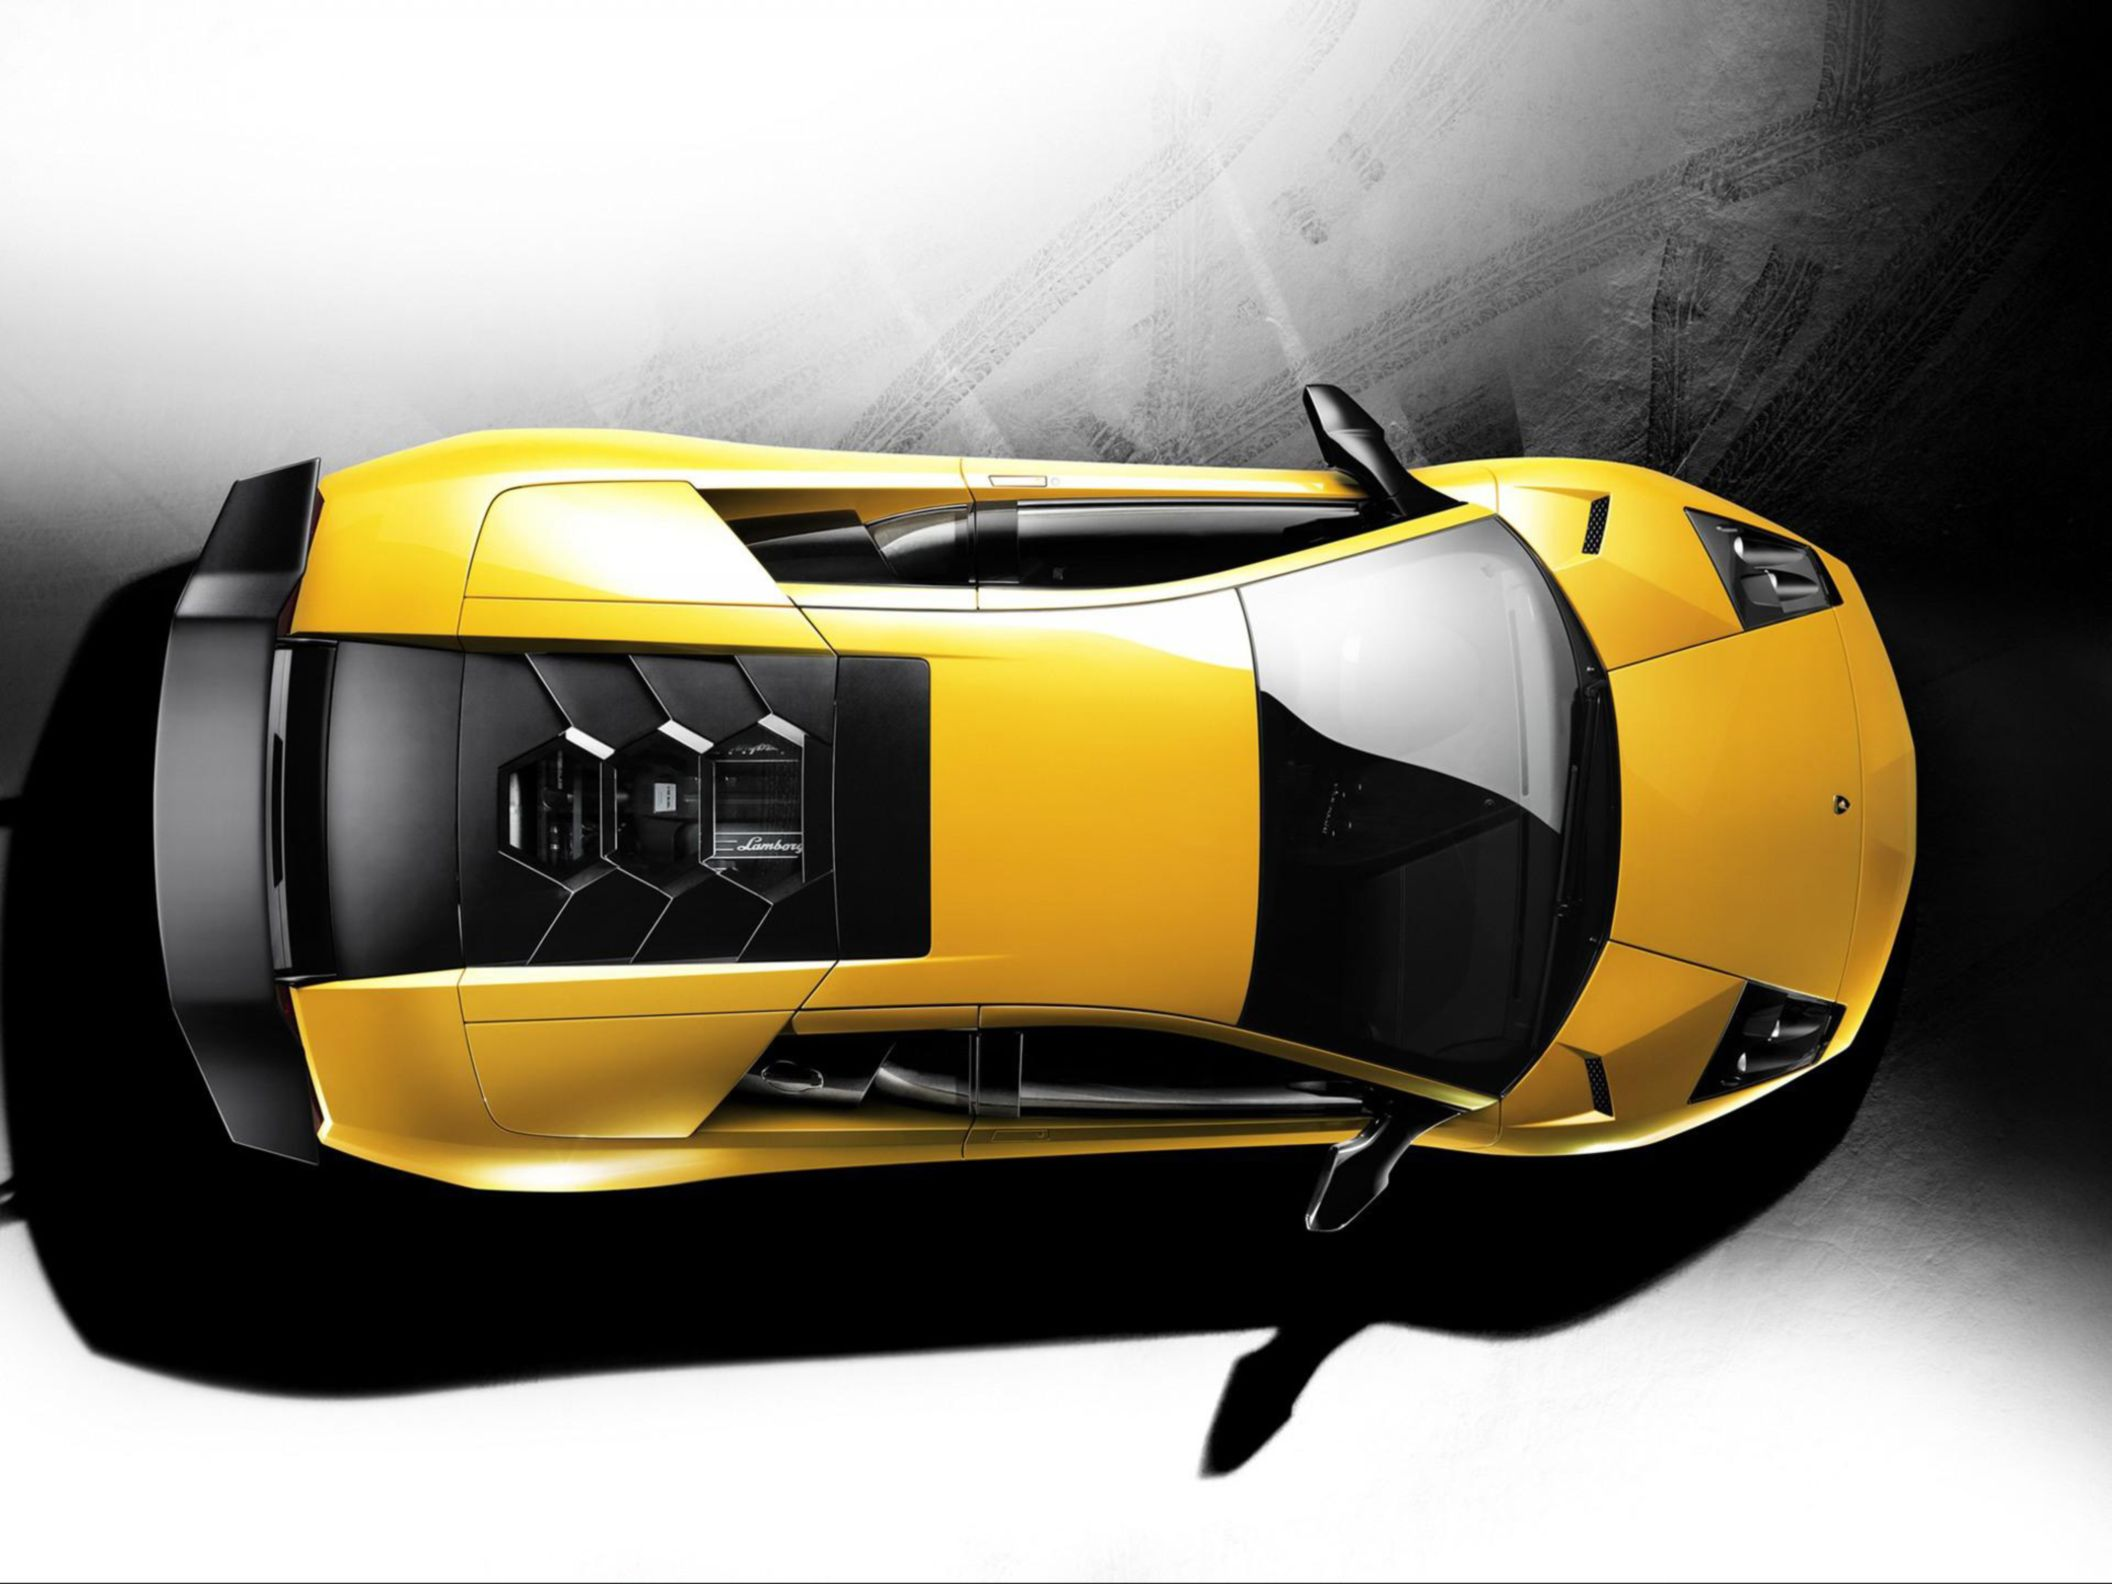 Download free HD Lamborghini Murcielago Superveloce Normal Wallpaper, image